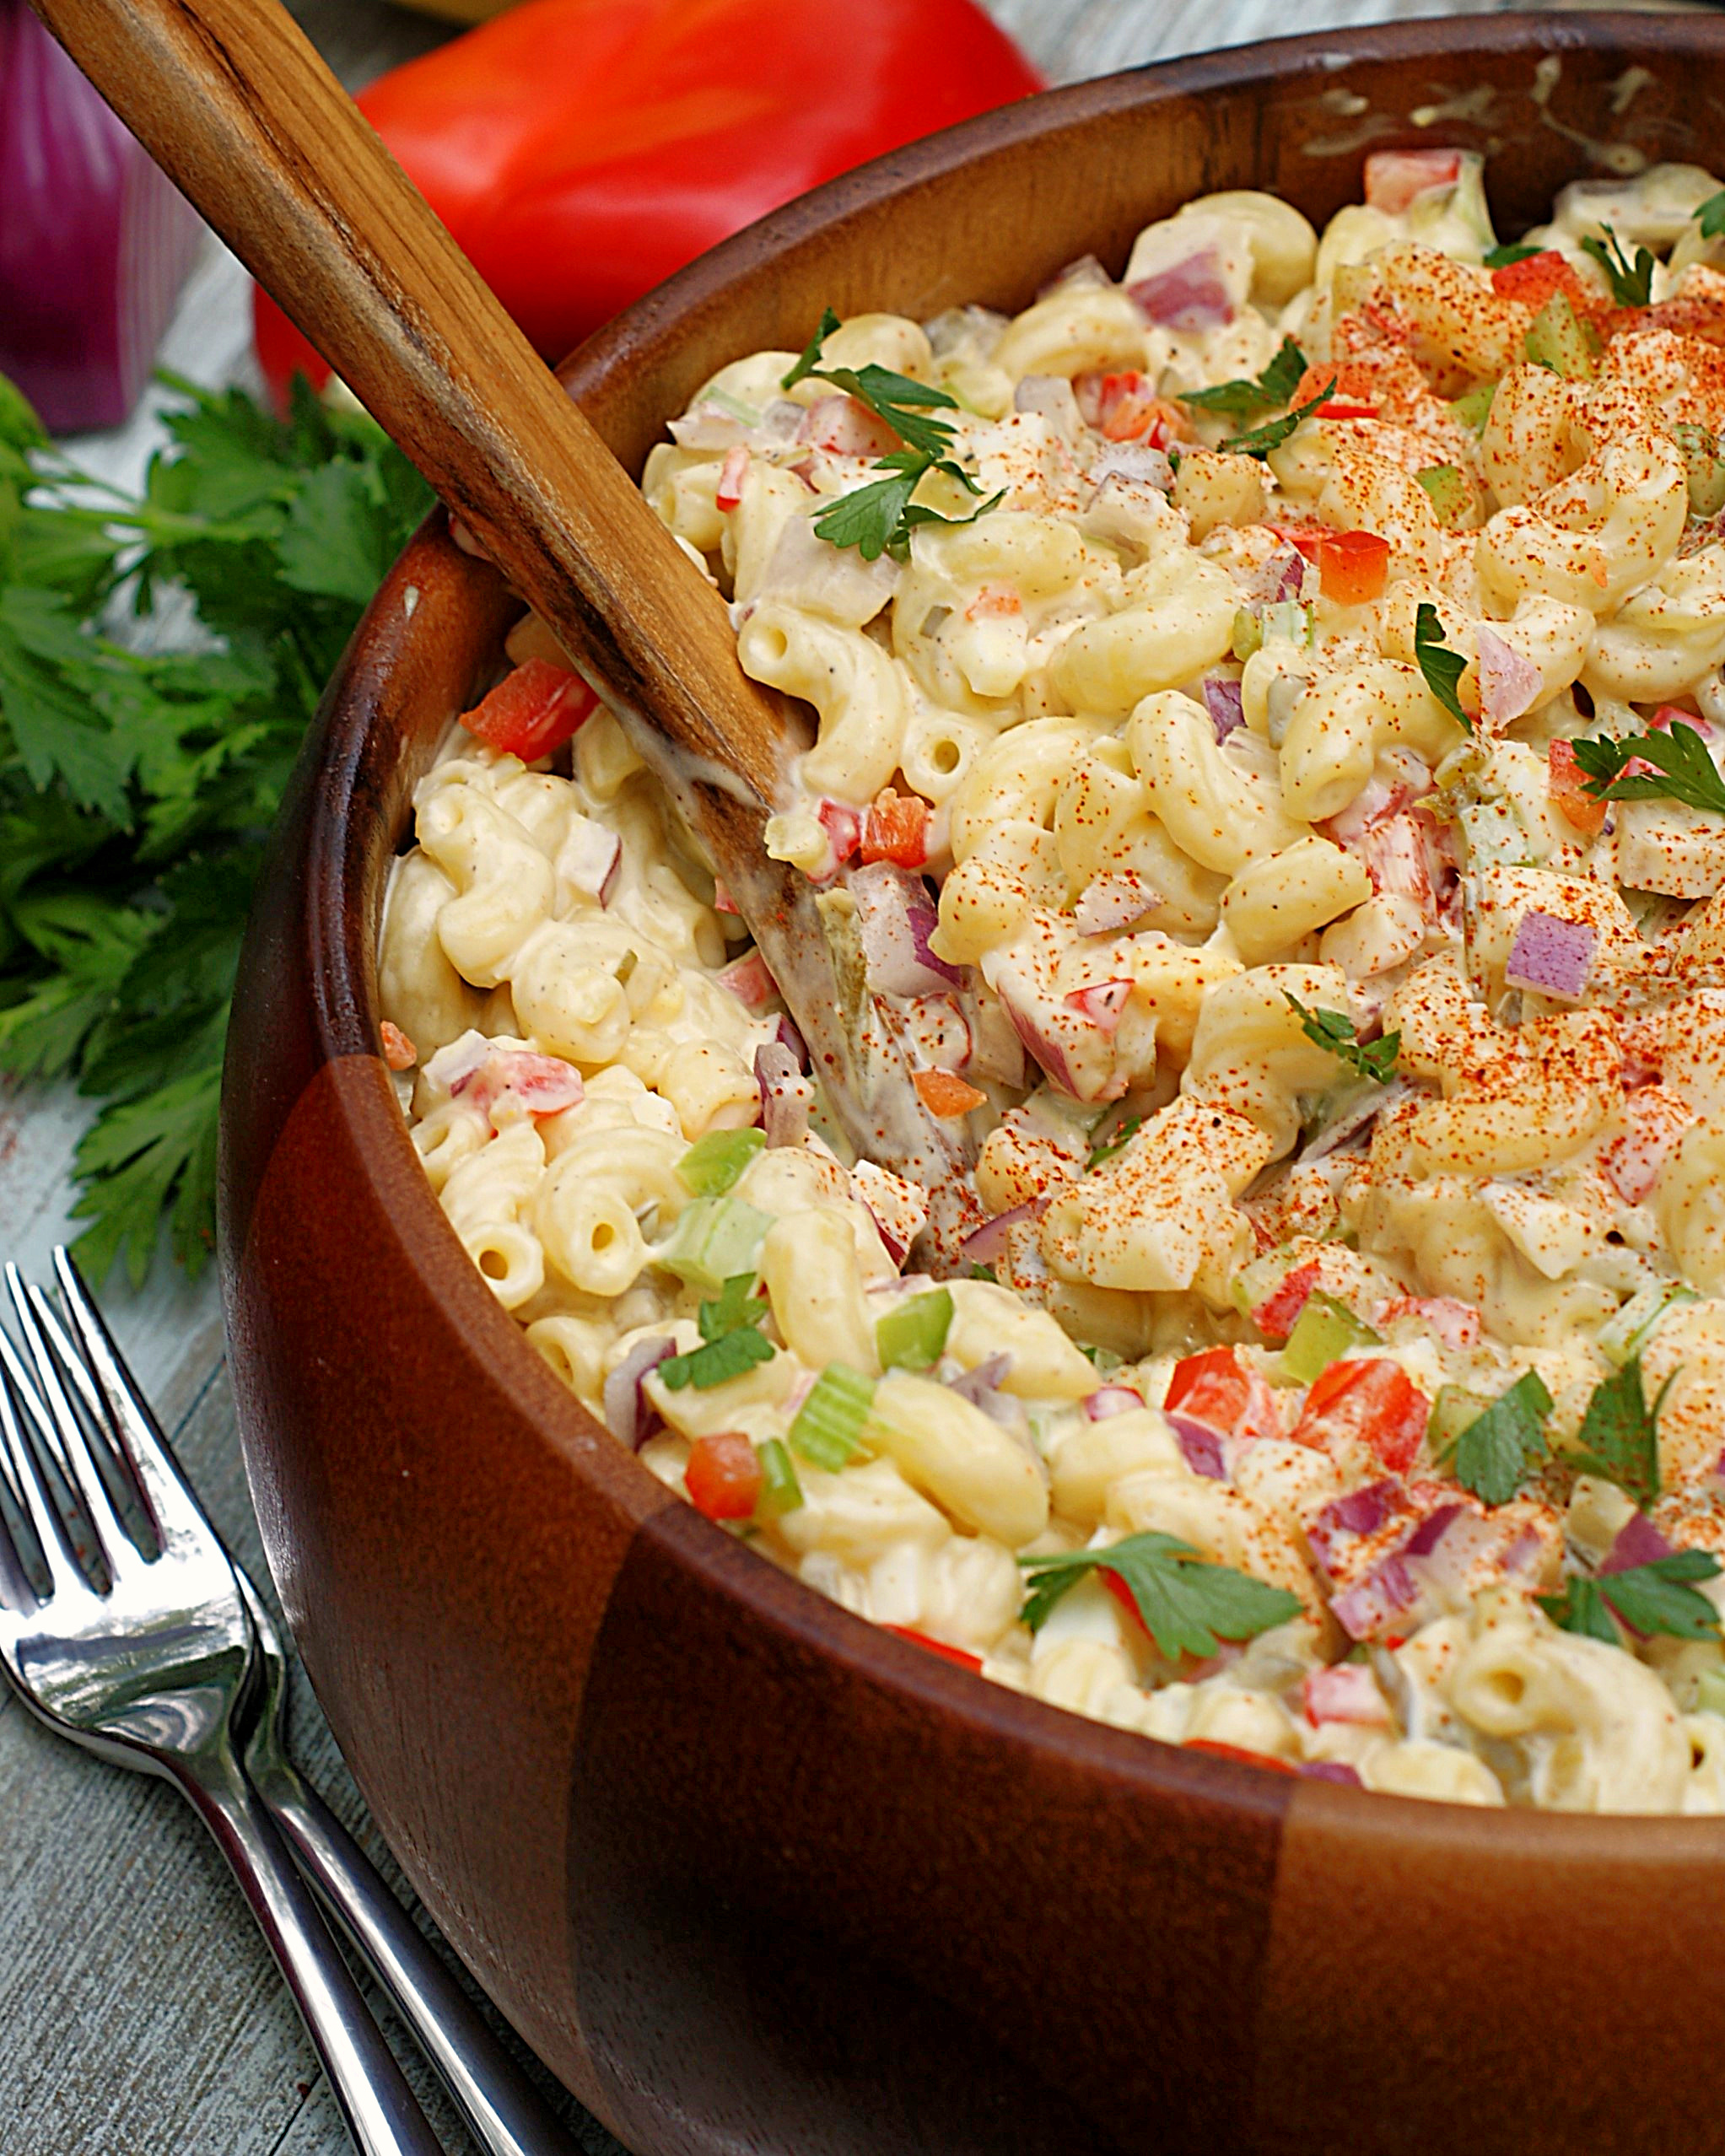 A bowl of southern macaroni salad loaded with red onion, red bell pepper, celery, boiled eggs and elbow macaroni.